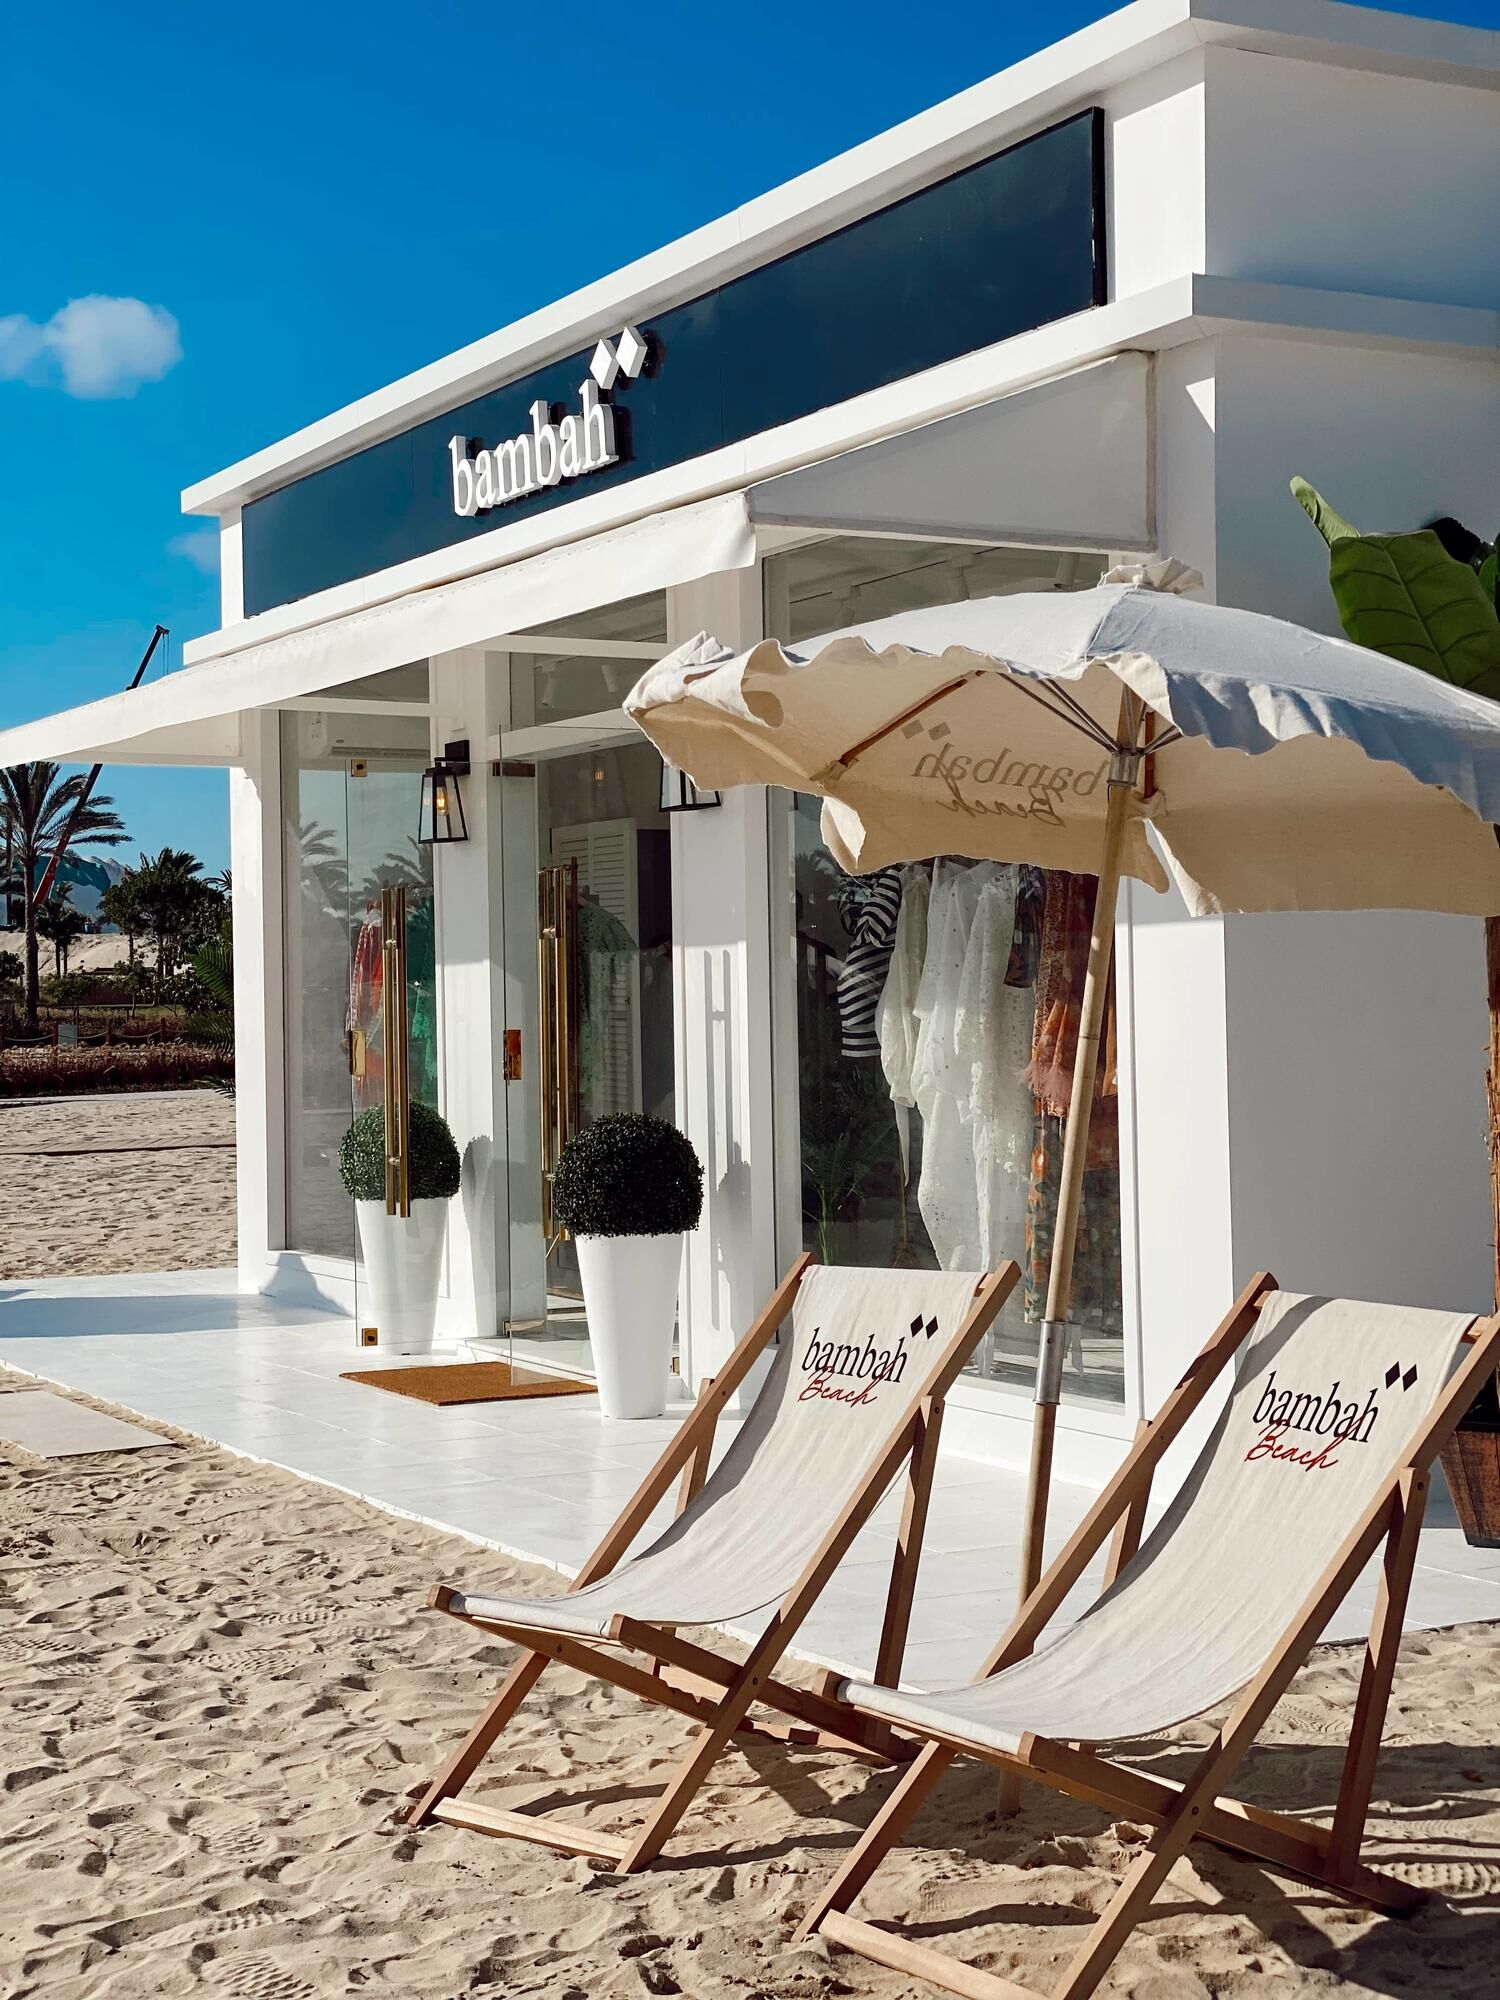 Discover Your Effortless Summer Style at Bambah's New Beachside Pop-Up in Sahel